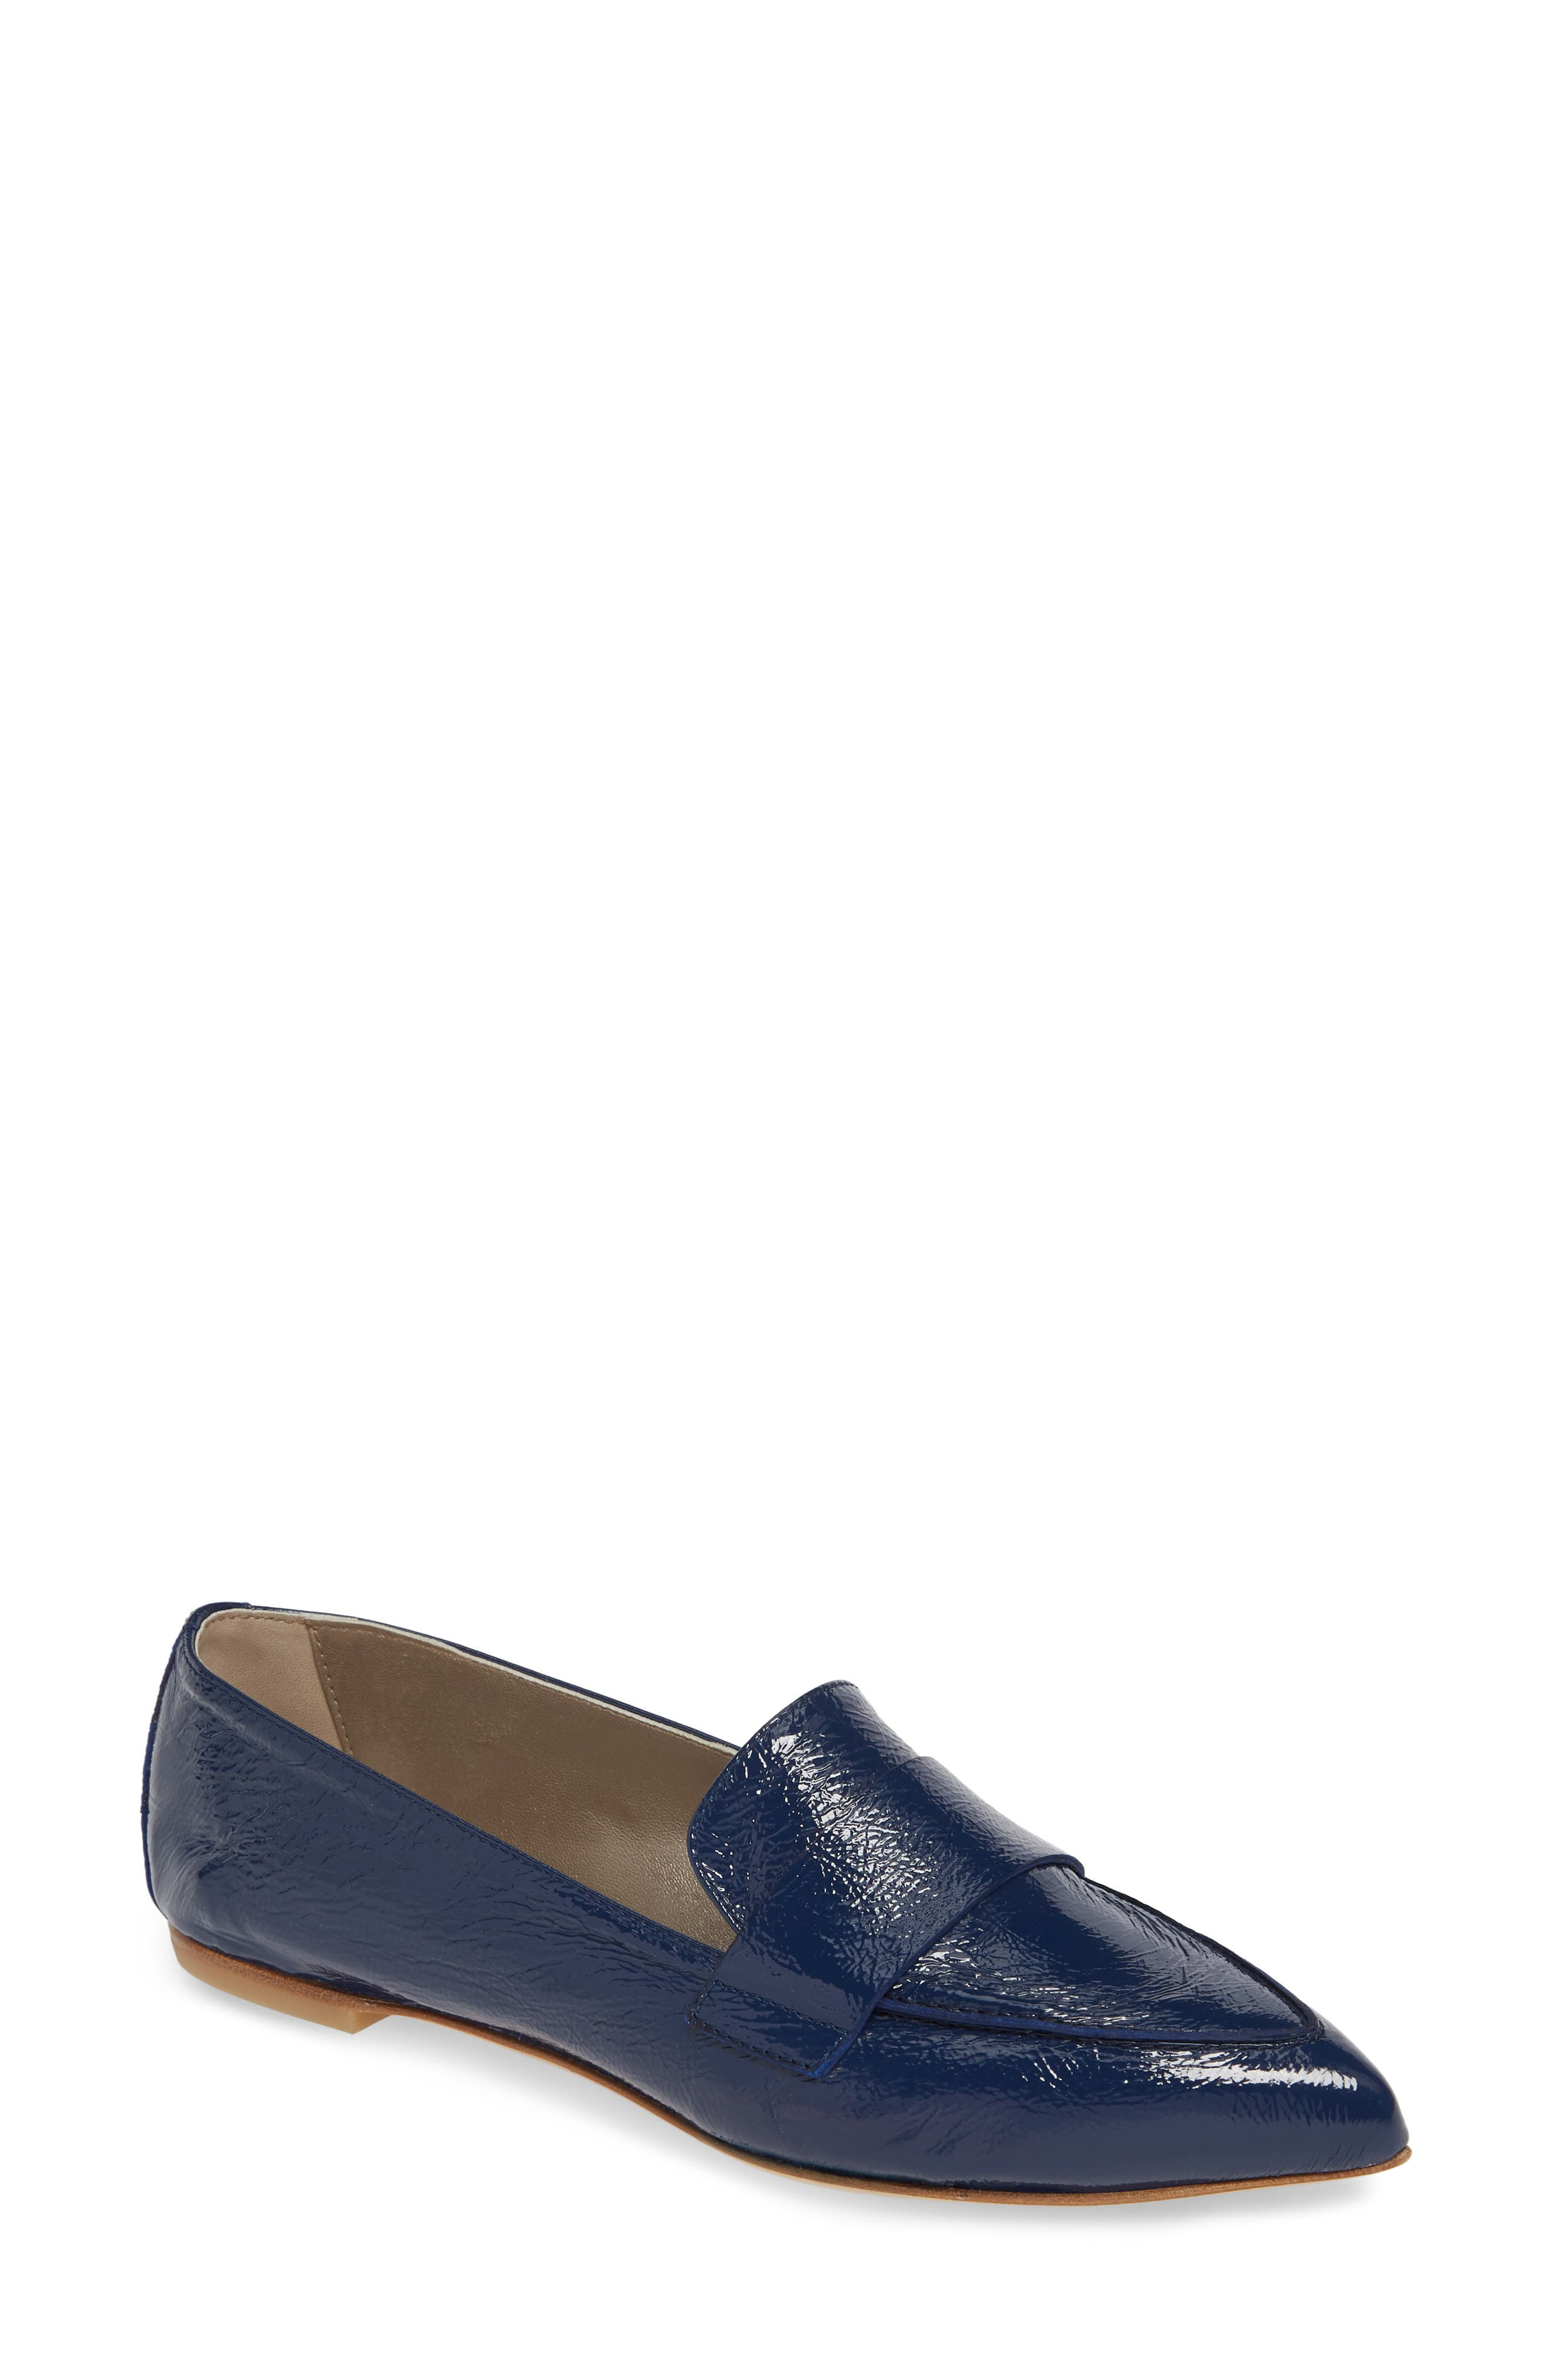 AGL Softy Pointy Toe Moccasin Loafer, Main, color, OCEAN PATENT